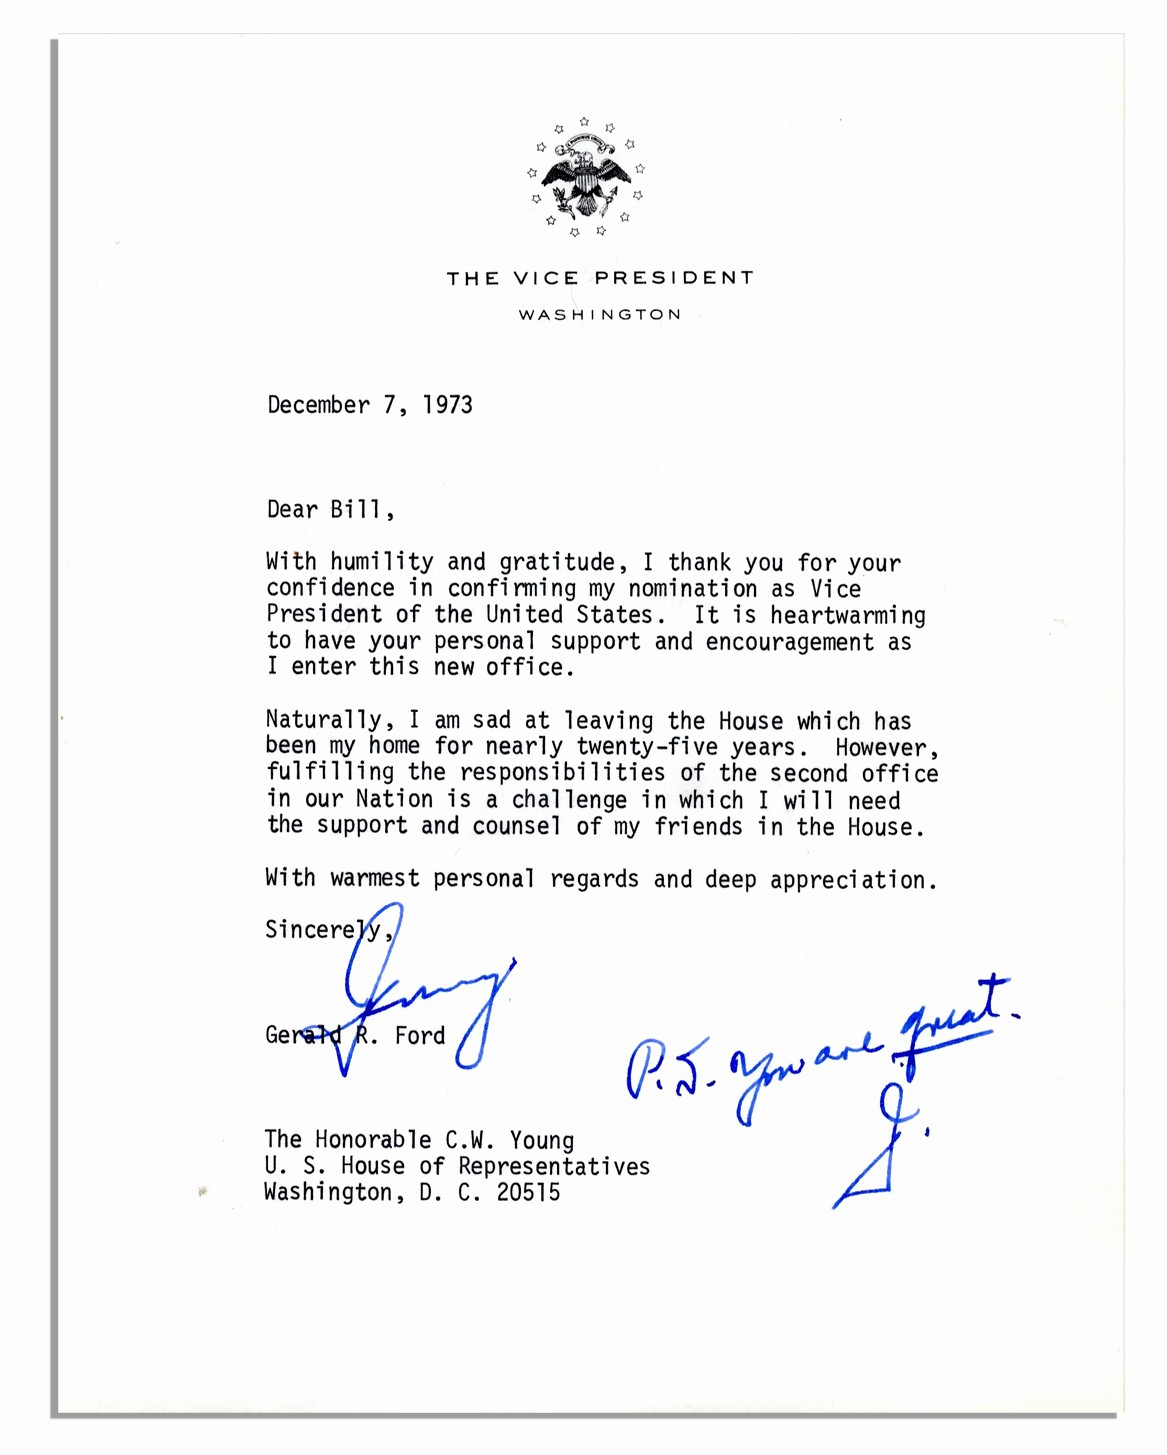 Office Of the President Letterhead Best Of Lot Detail Rare Gerald ford Letter Signed as Vice